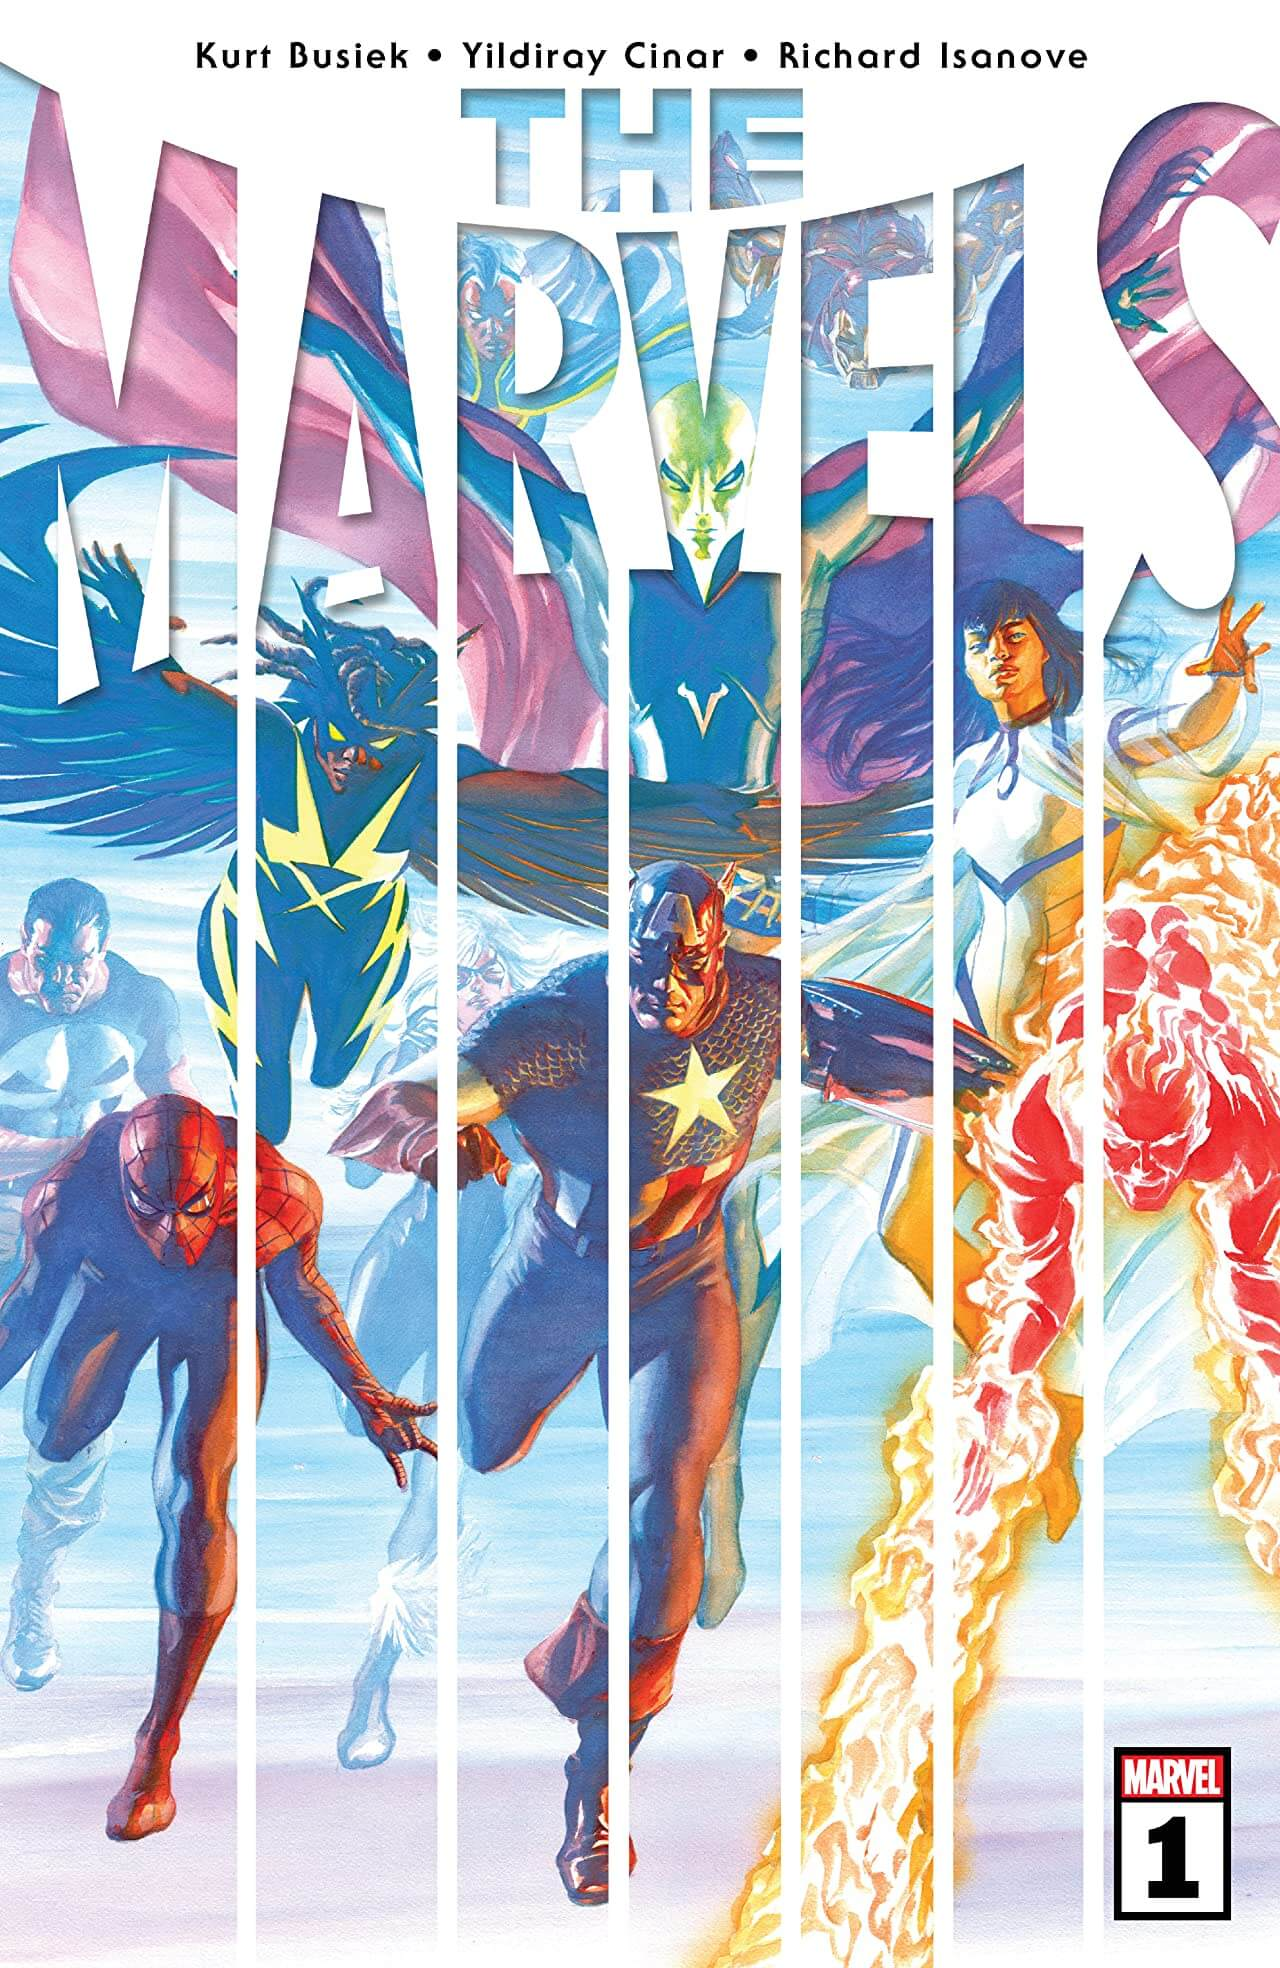 The Marvels #1 Cover by Alex Ross. Kurt Busiek (Writer), Simon Bowland (Letters), Yildiray Cinar (Artist), Richard Isanove (Colours) Marvel Comics April 28, 2021